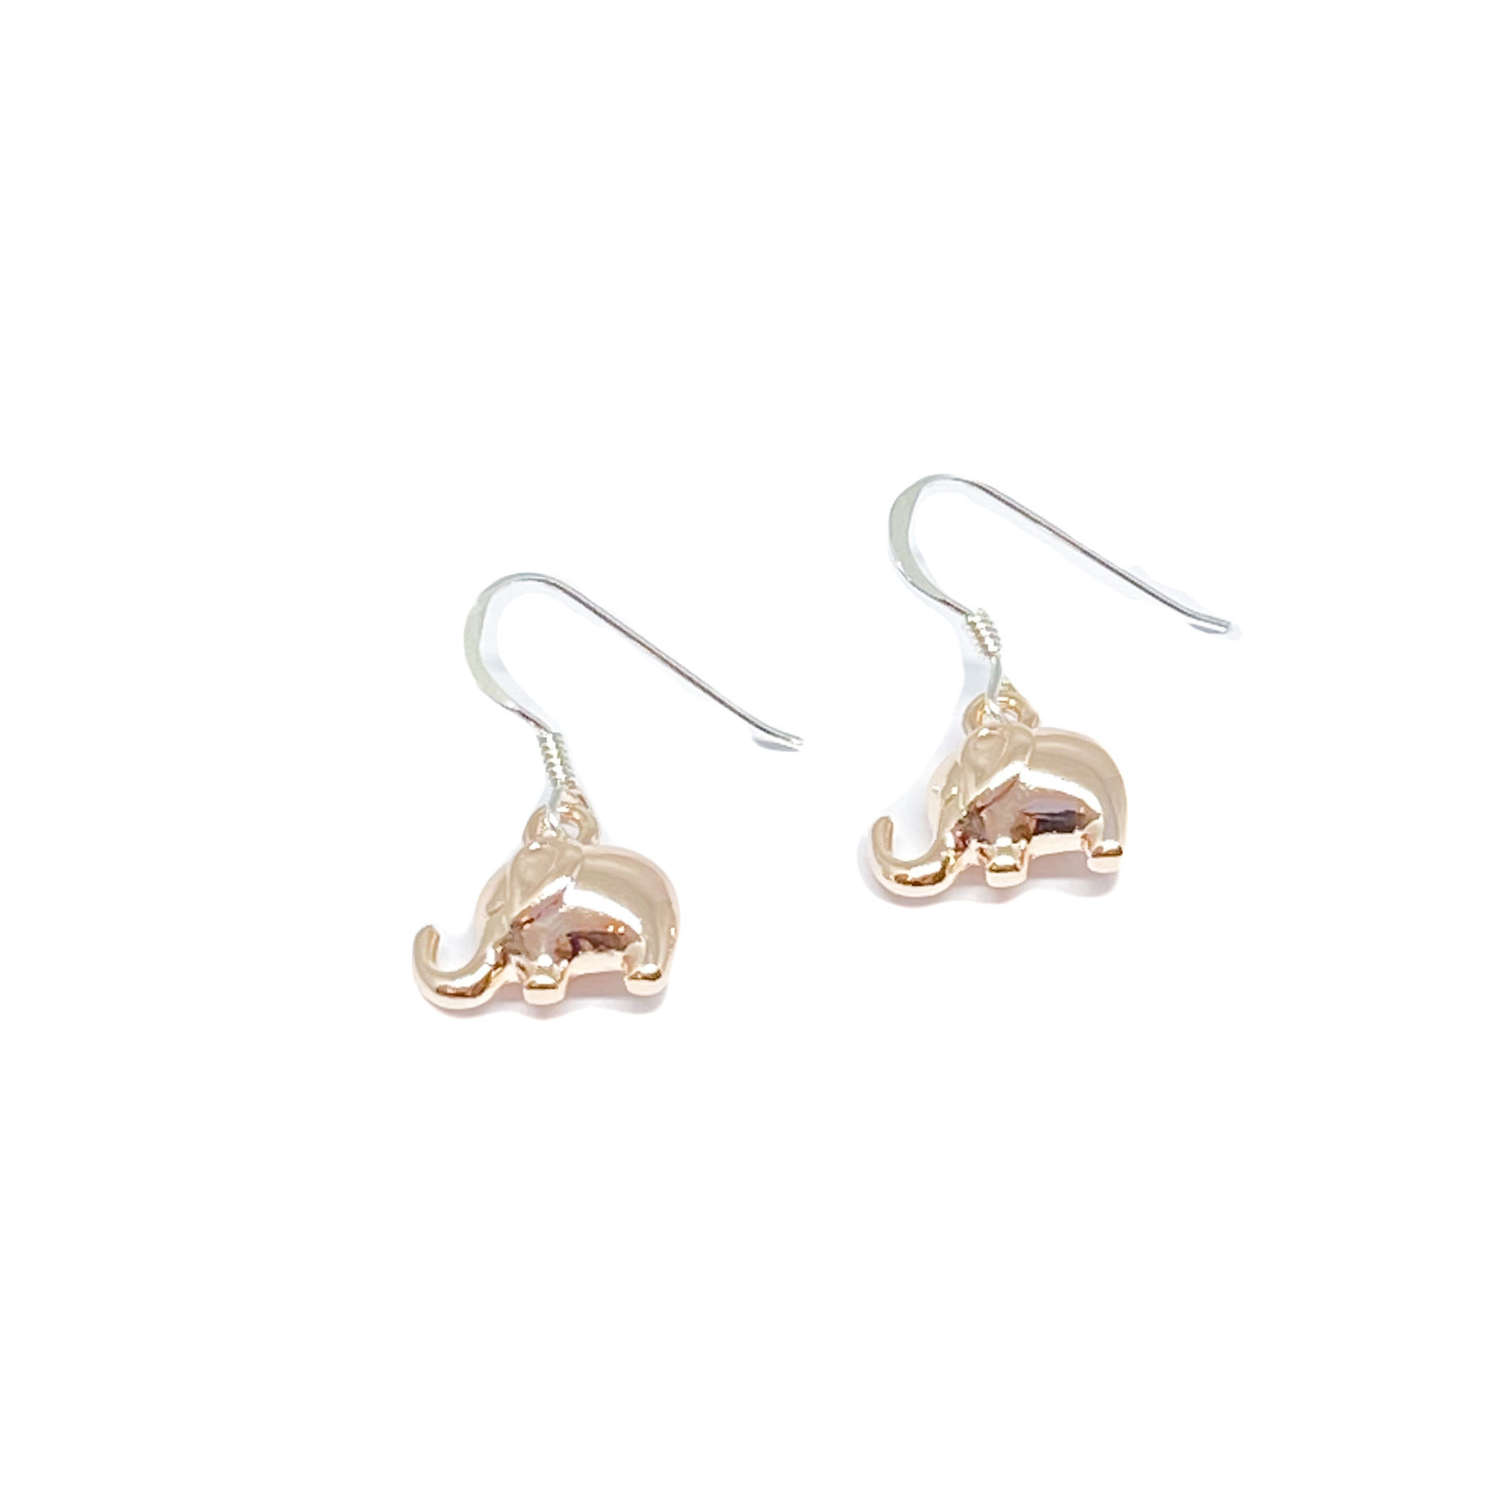 Daisy Elephant Earrings - Rose Gold